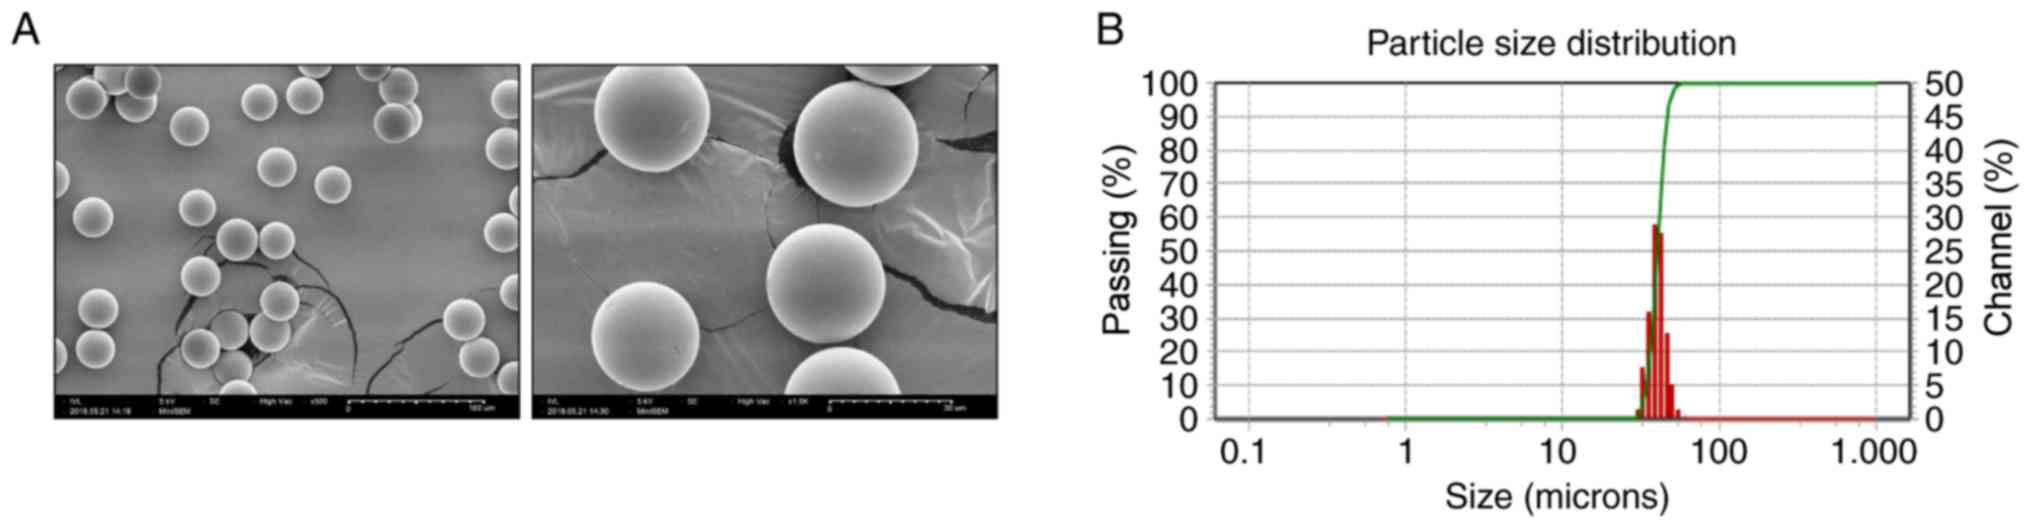 Development Of Finasteride Polymer Microspheres For Systemic Application In Androgenic Alopecia